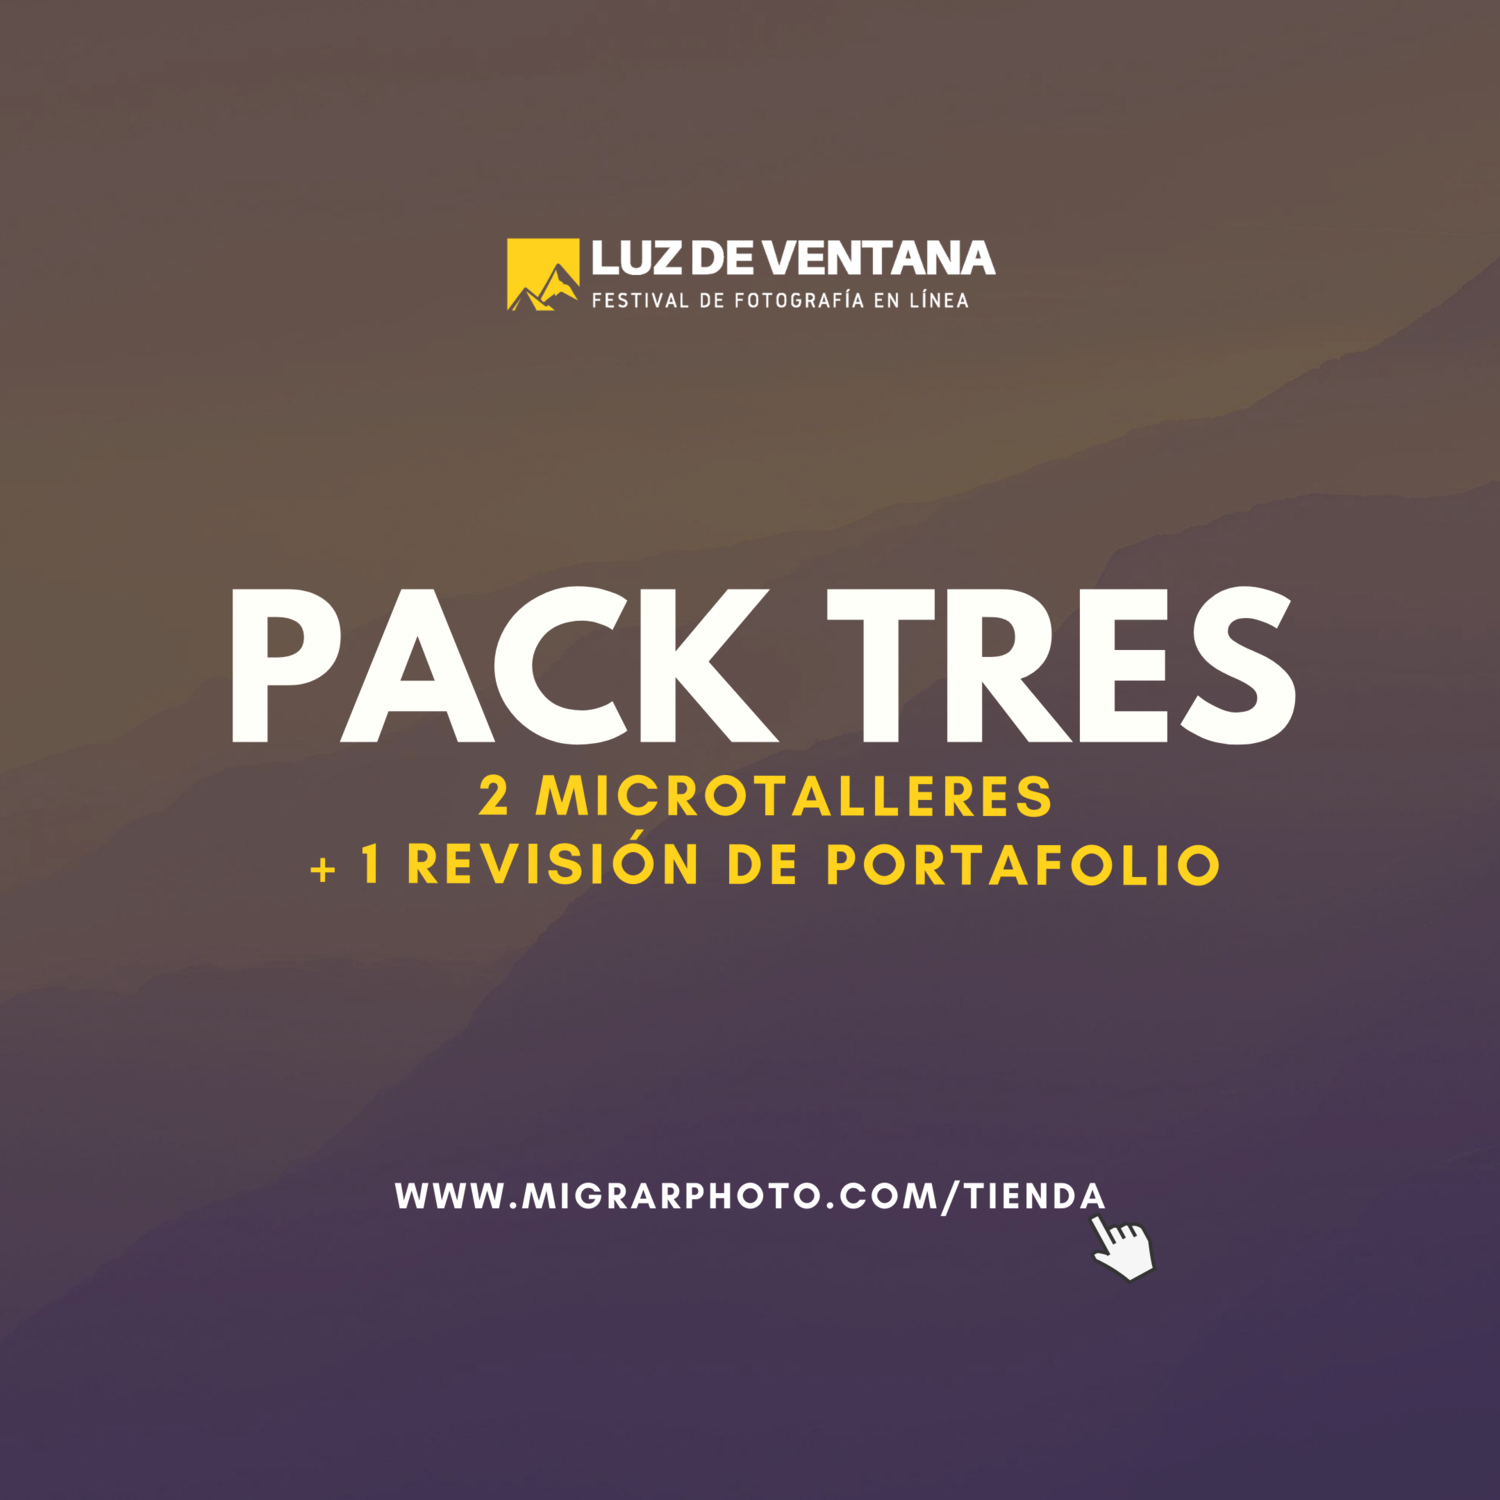 PACK TRES